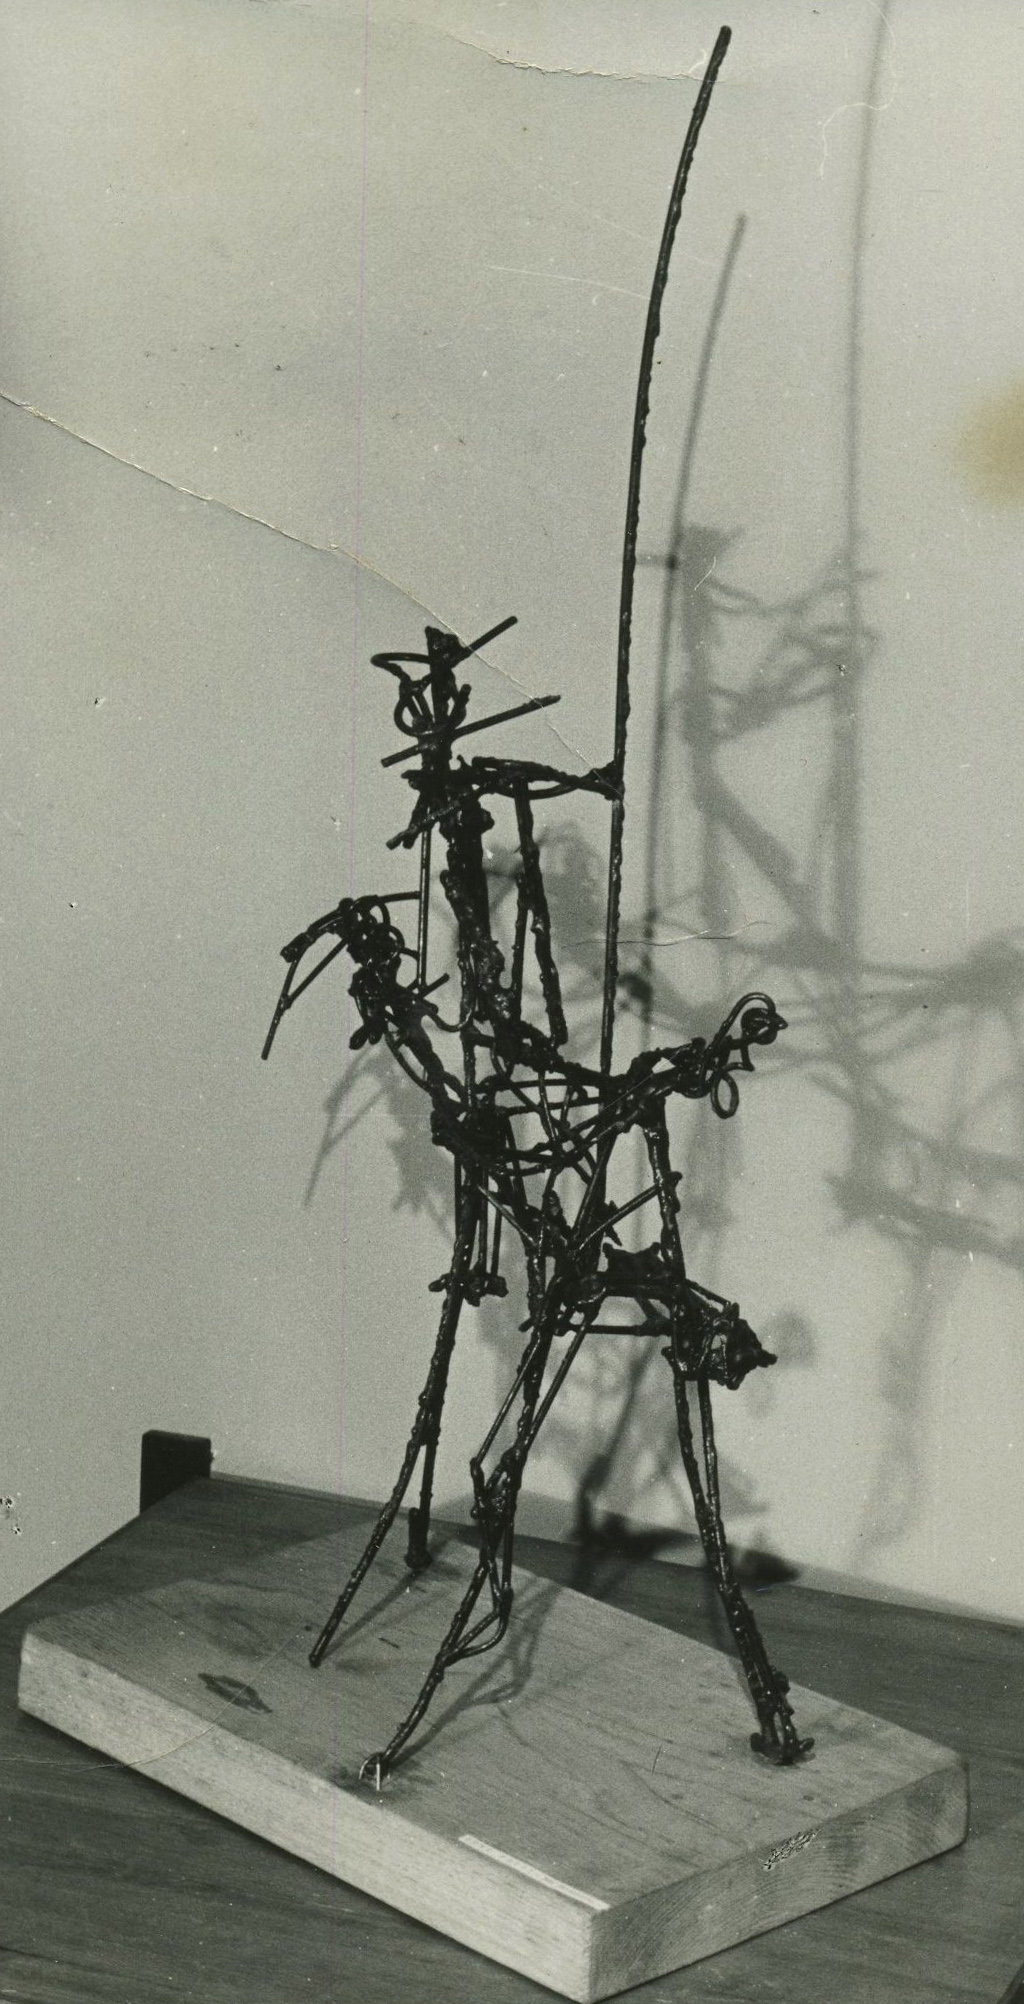 WIre sculpture resembles figure with lance riding a horseback